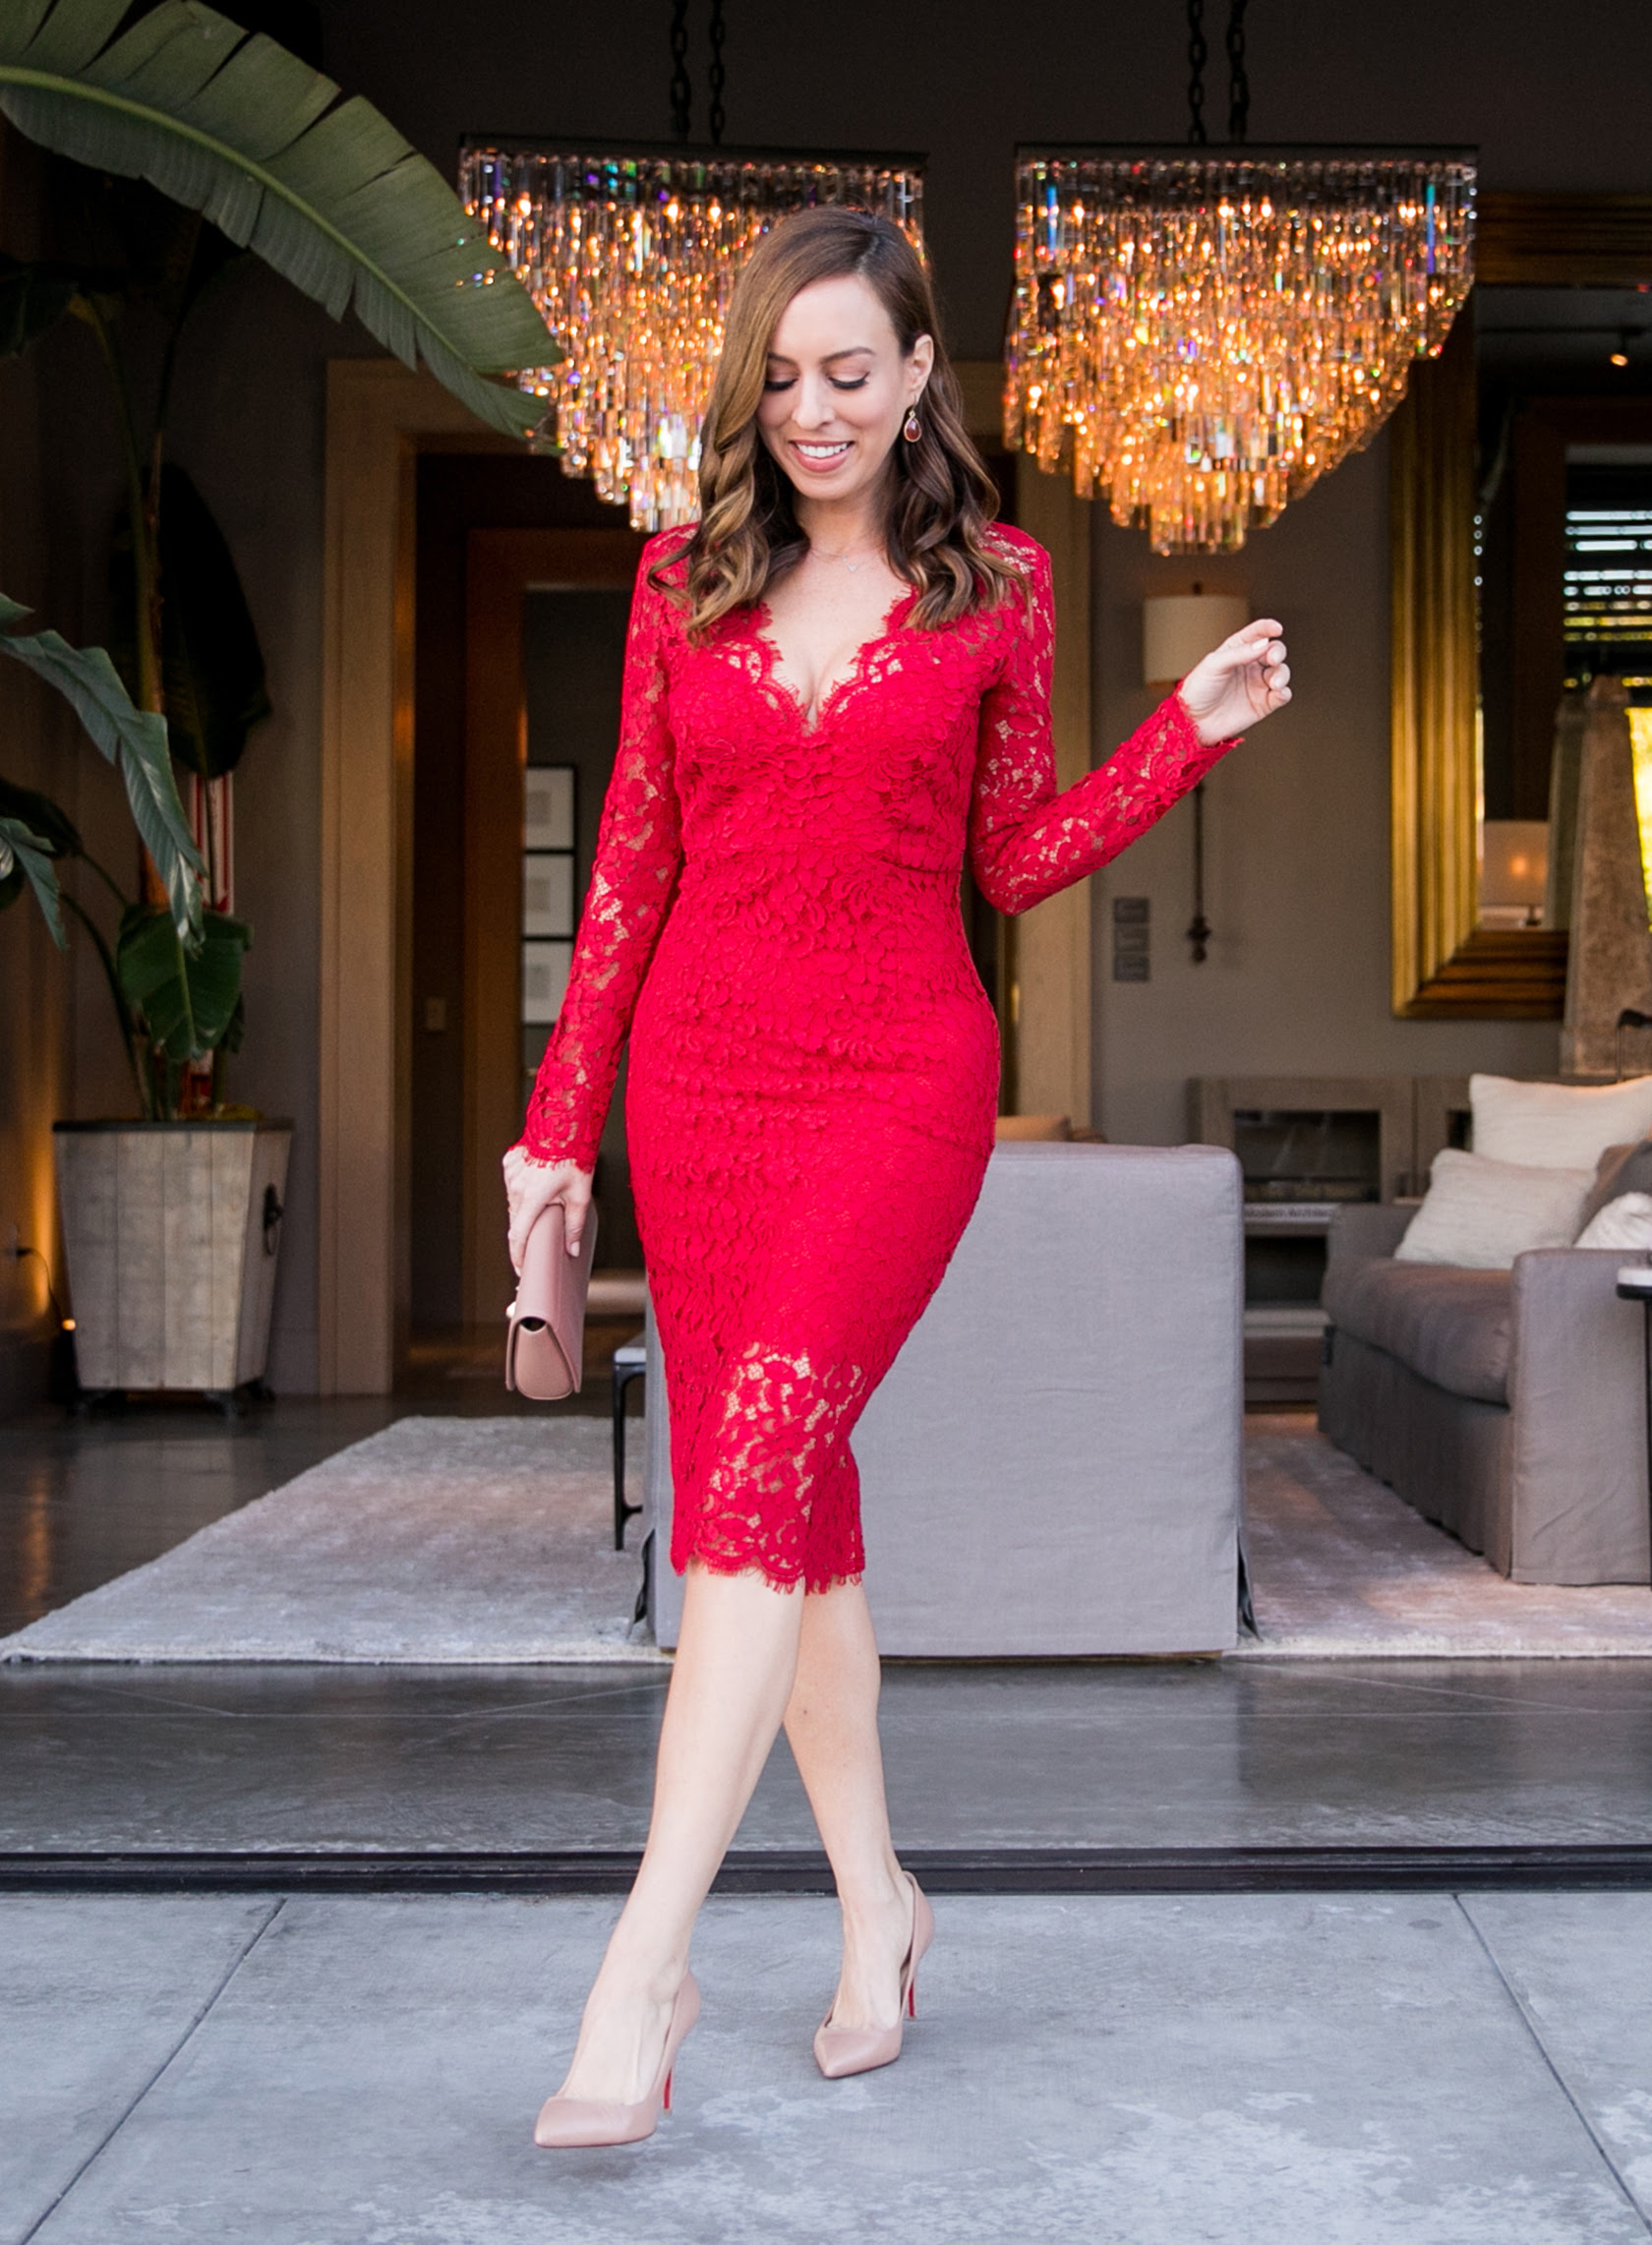 red long sleeved lace dress perfect for valentine's day